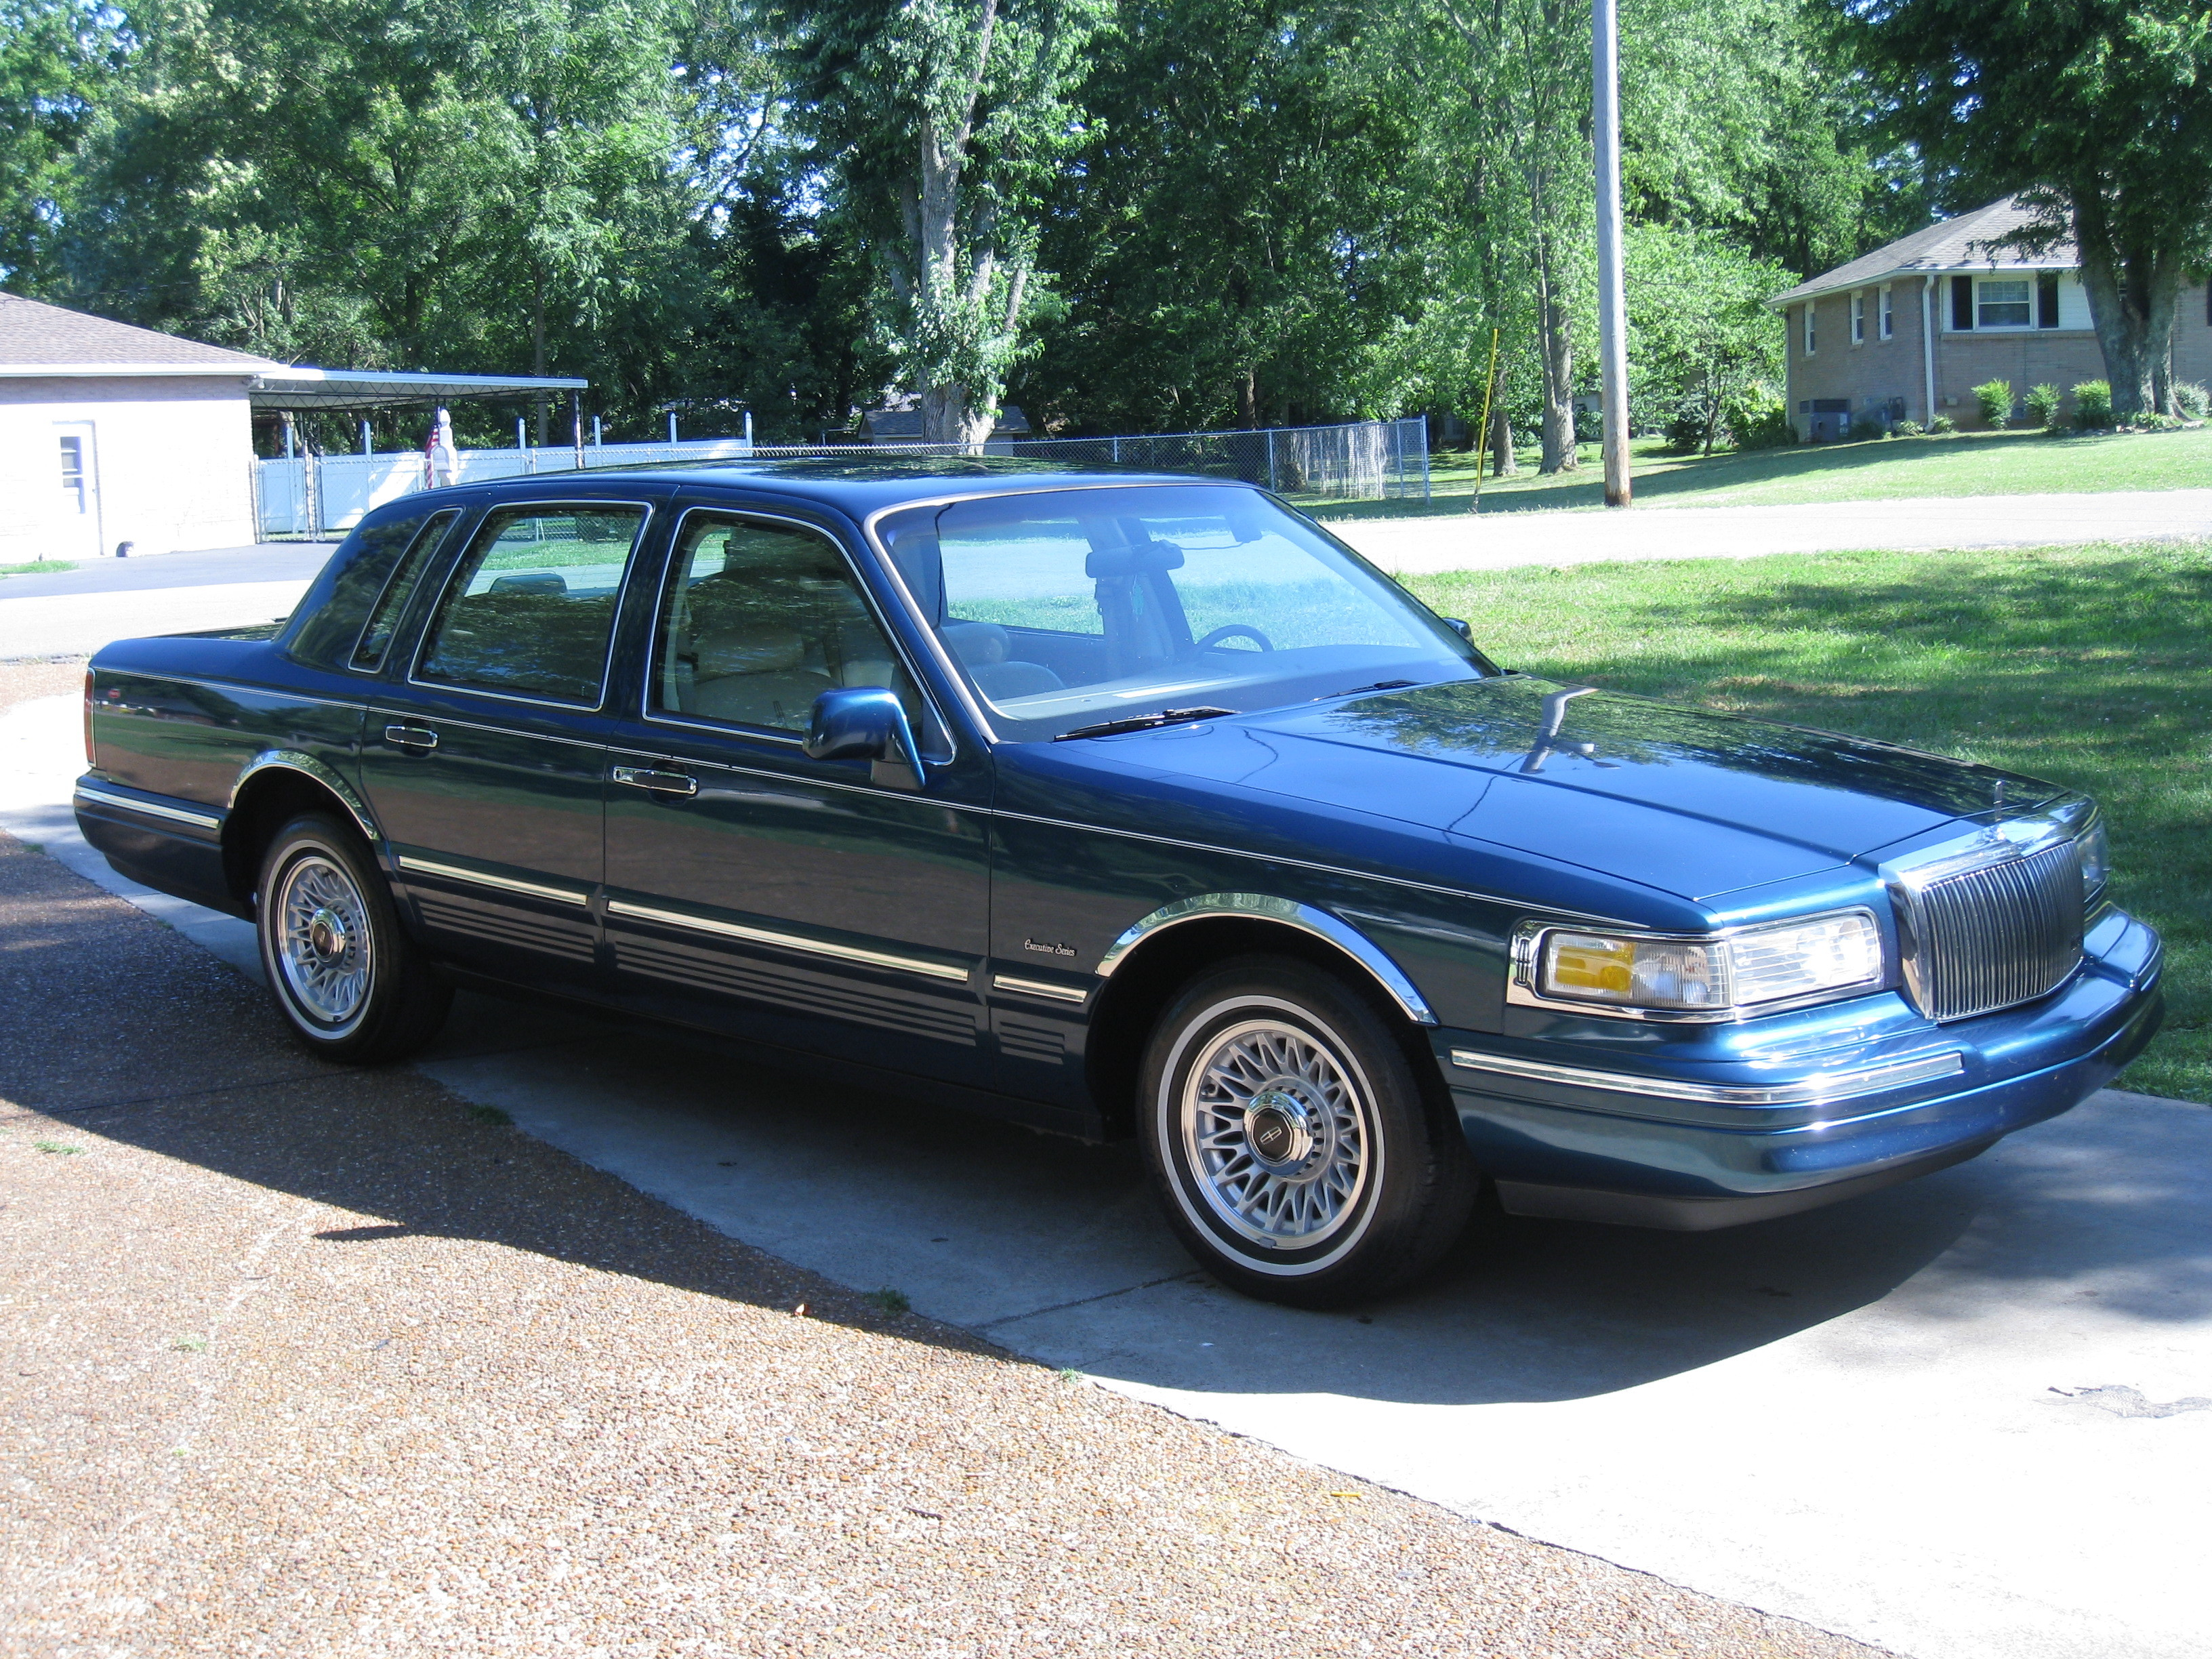 90lincolntc 1997 Lincoln Town Car Specs Photos Modification Info Wiring Diagram For 32820470013 Original 32820470014